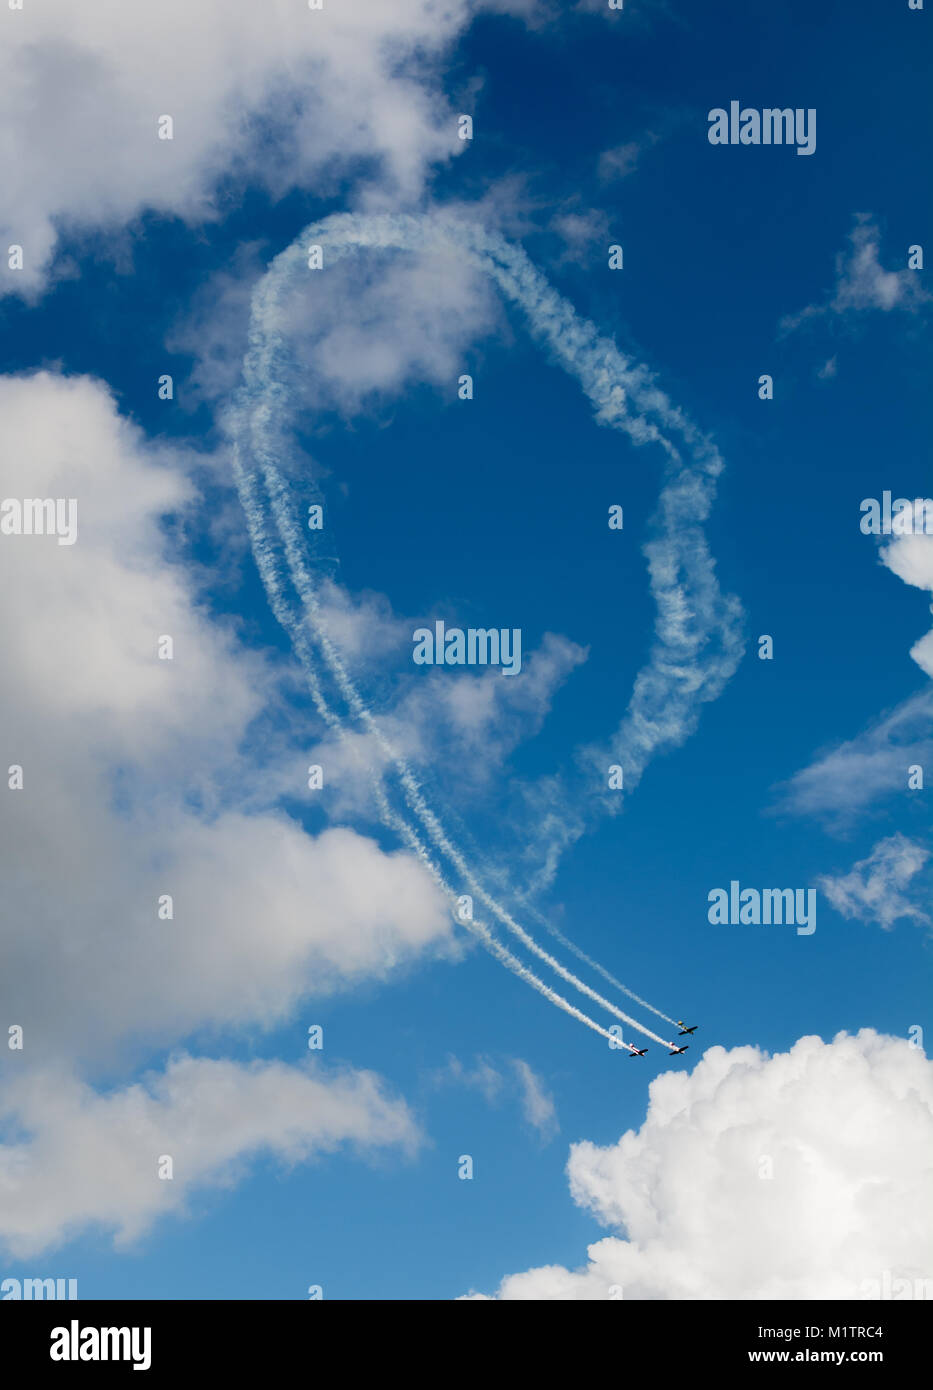 Aerobatic maneuver in a blue sky - Stock Image